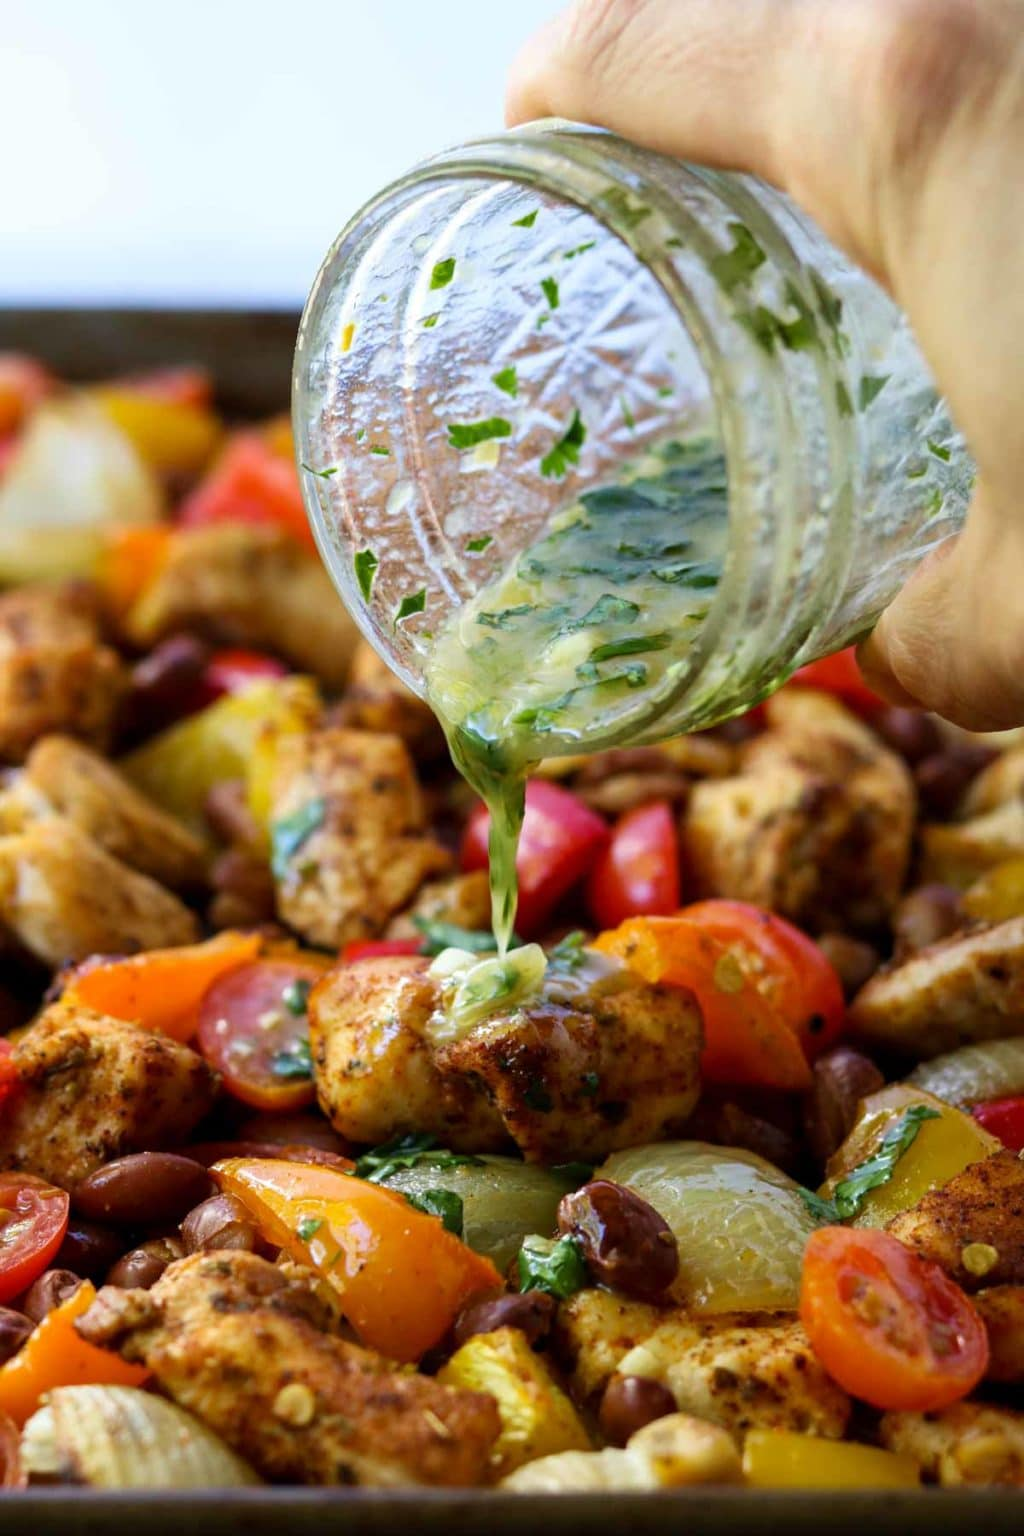 Chicken and veggies being drizzled with a cilantro lime vinaigrette